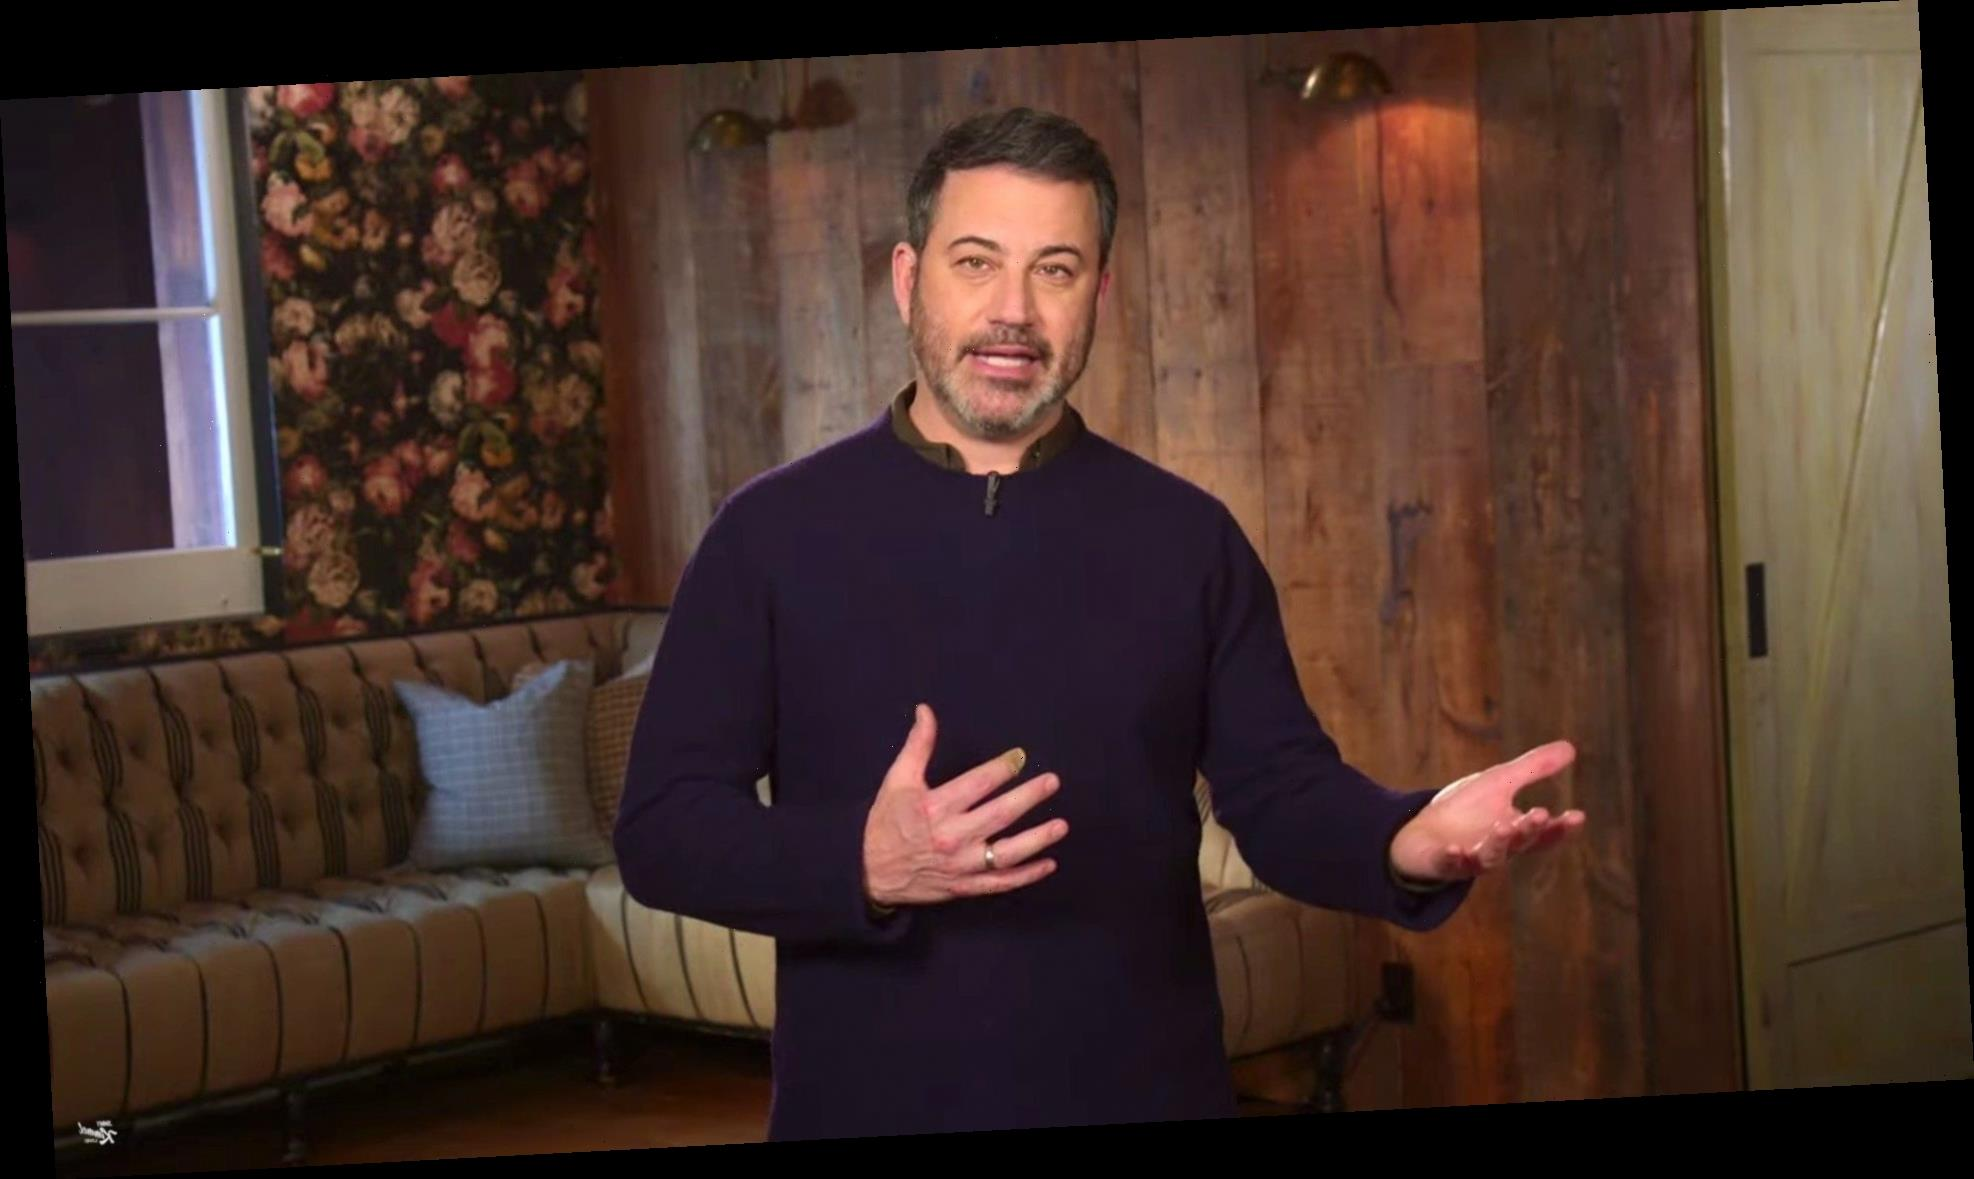 Jimmy Kimmel Calls Out Trump's 'Scumbag' Enablers By Name In Scathing Monologue